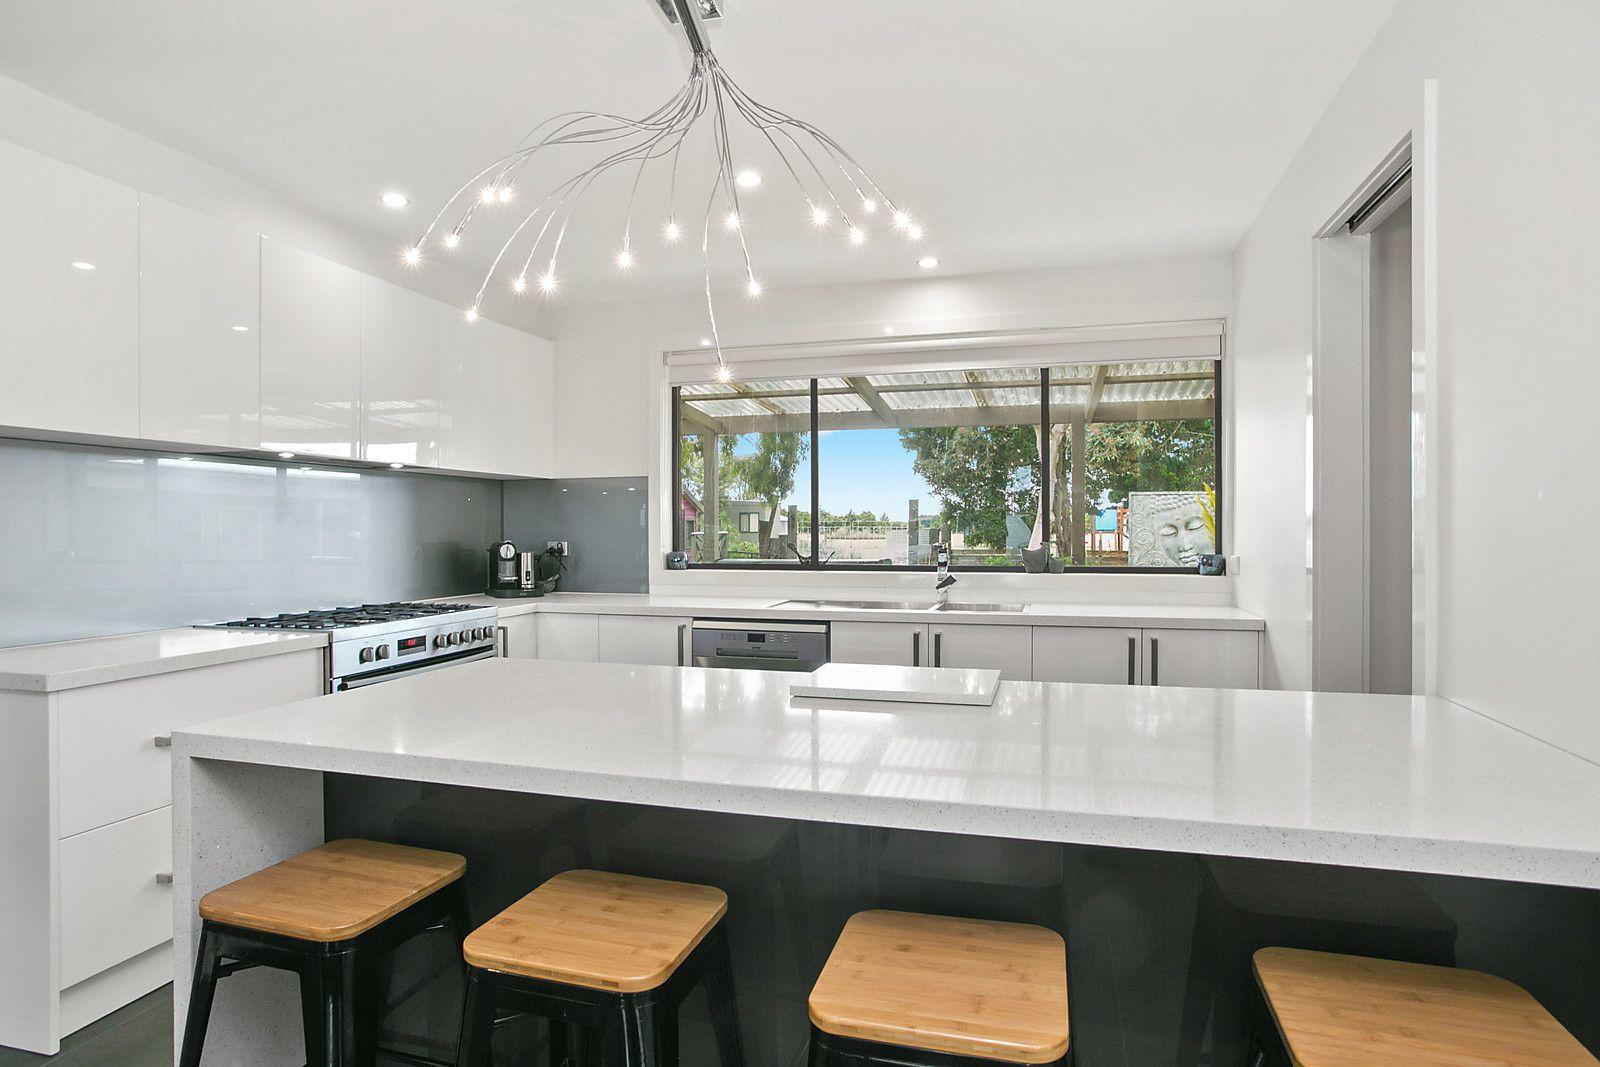 21-29 Chipperfield Drive, Moolap VIC 3224, Image 1